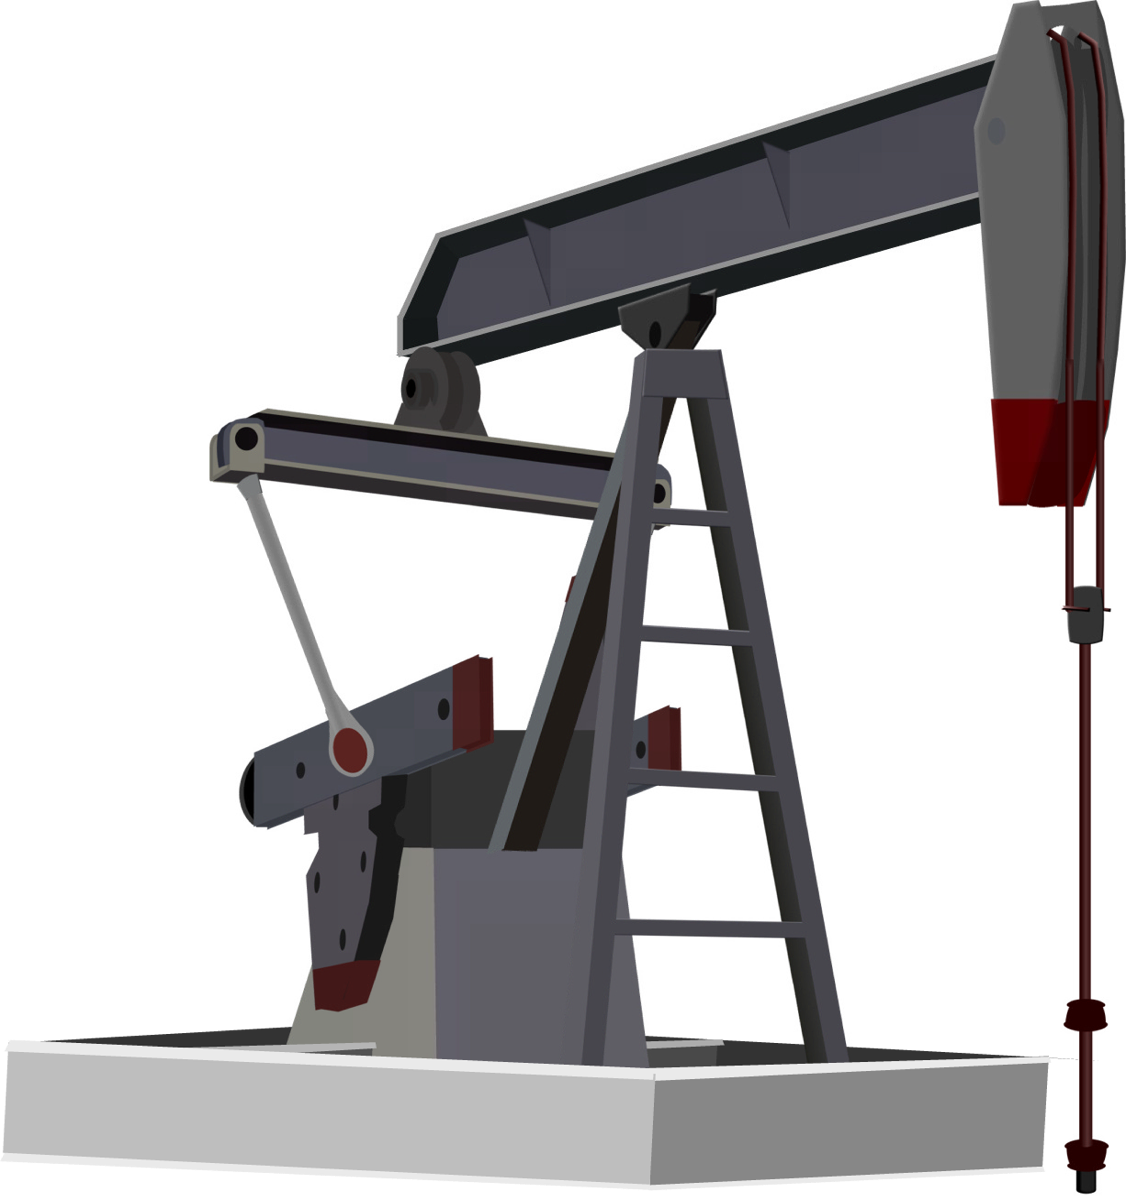 oil well coloring pages - photo#19